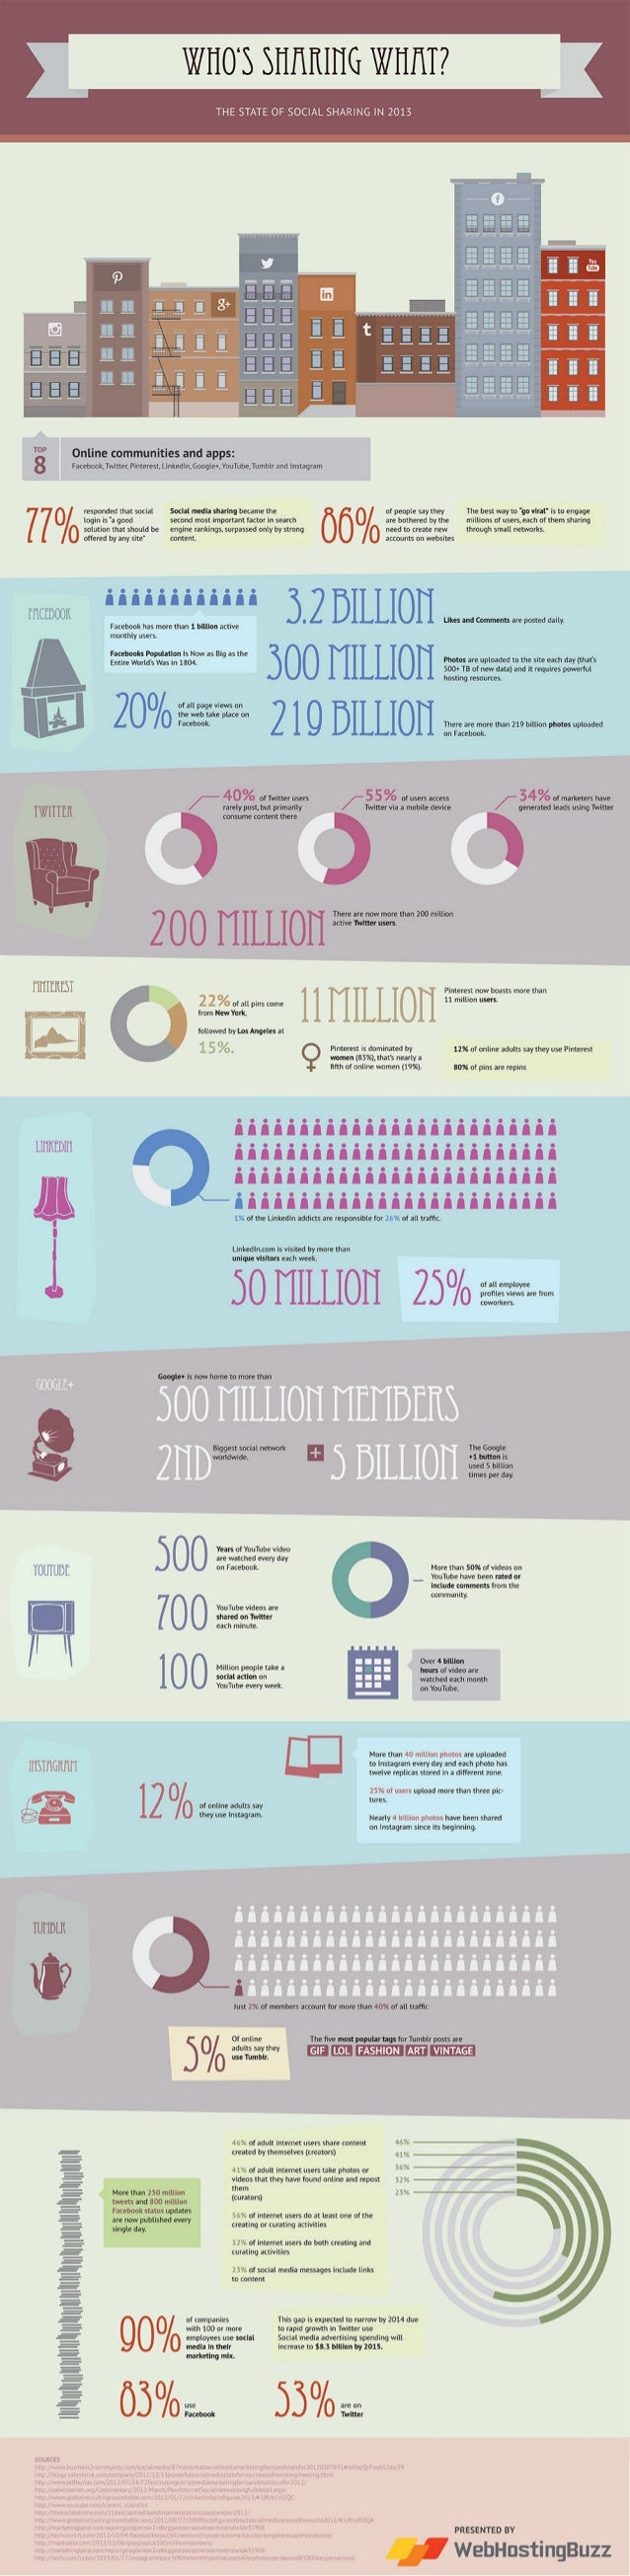 Collaborative IQ with Denise Holt - INFOGRAPHIC Social Sharing 2013